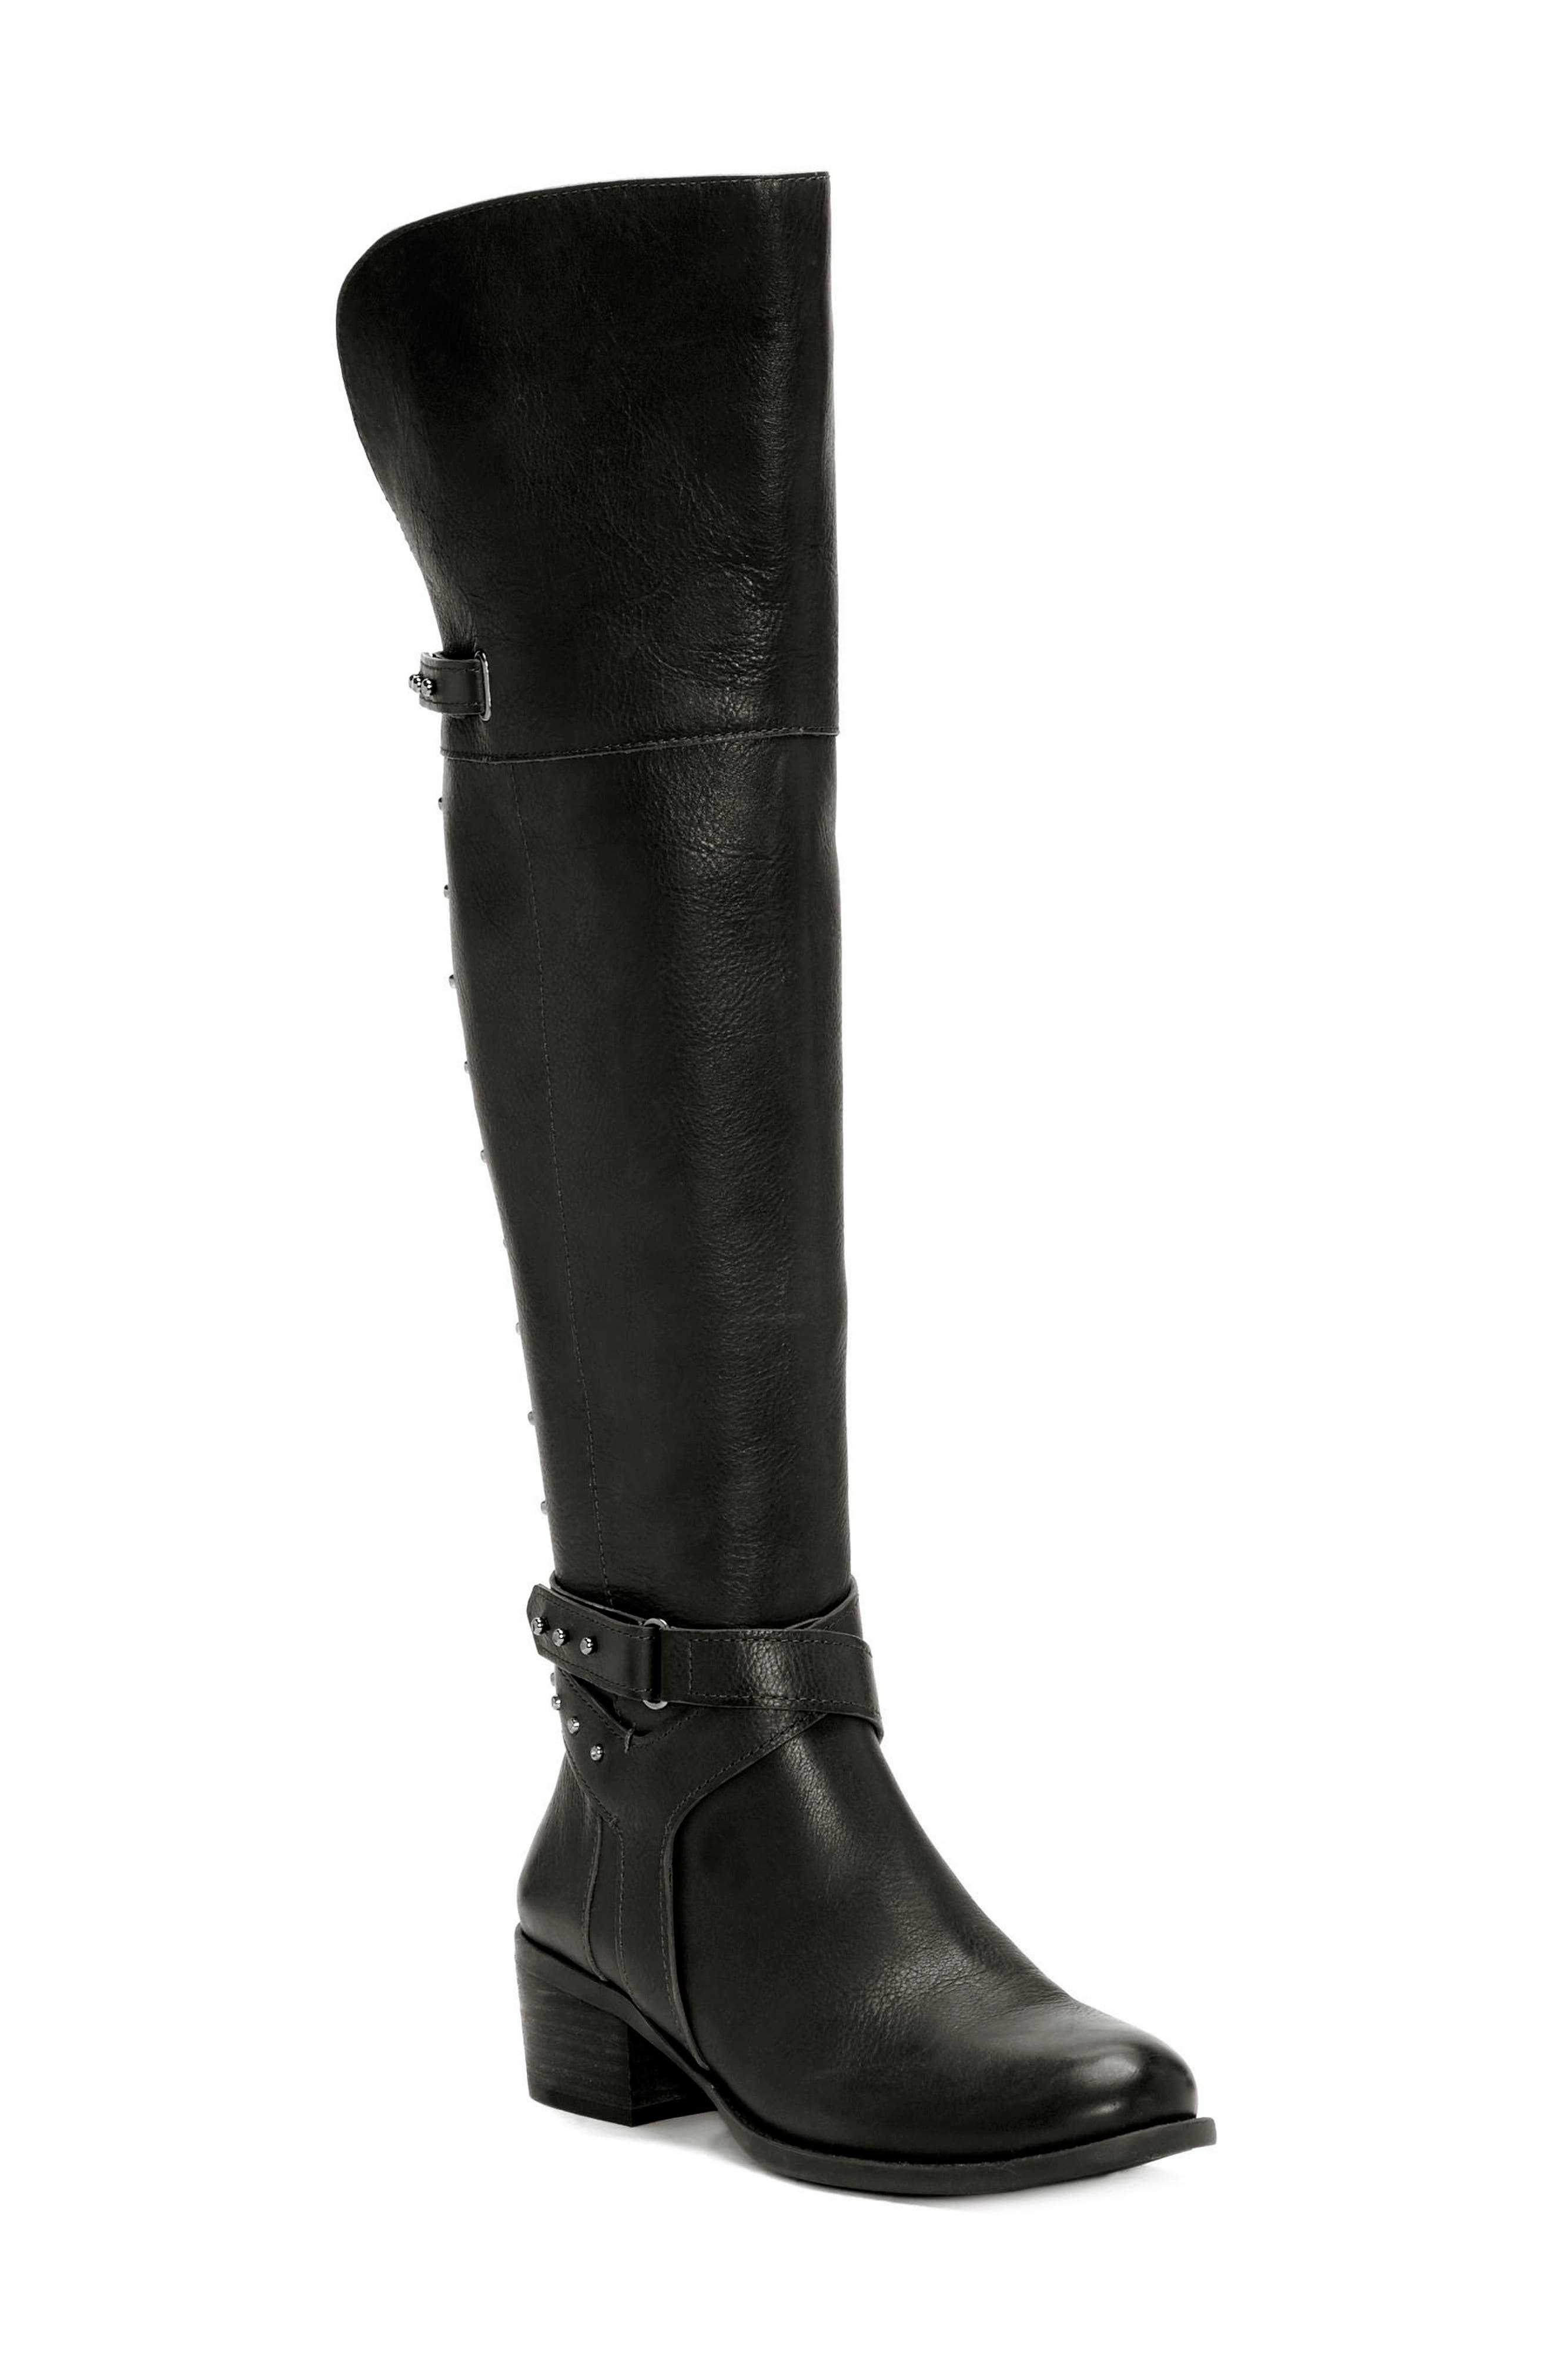 Bestant Over the Knee Boot,                         Main,                         color, BLACK LEATHER WIDE CALF